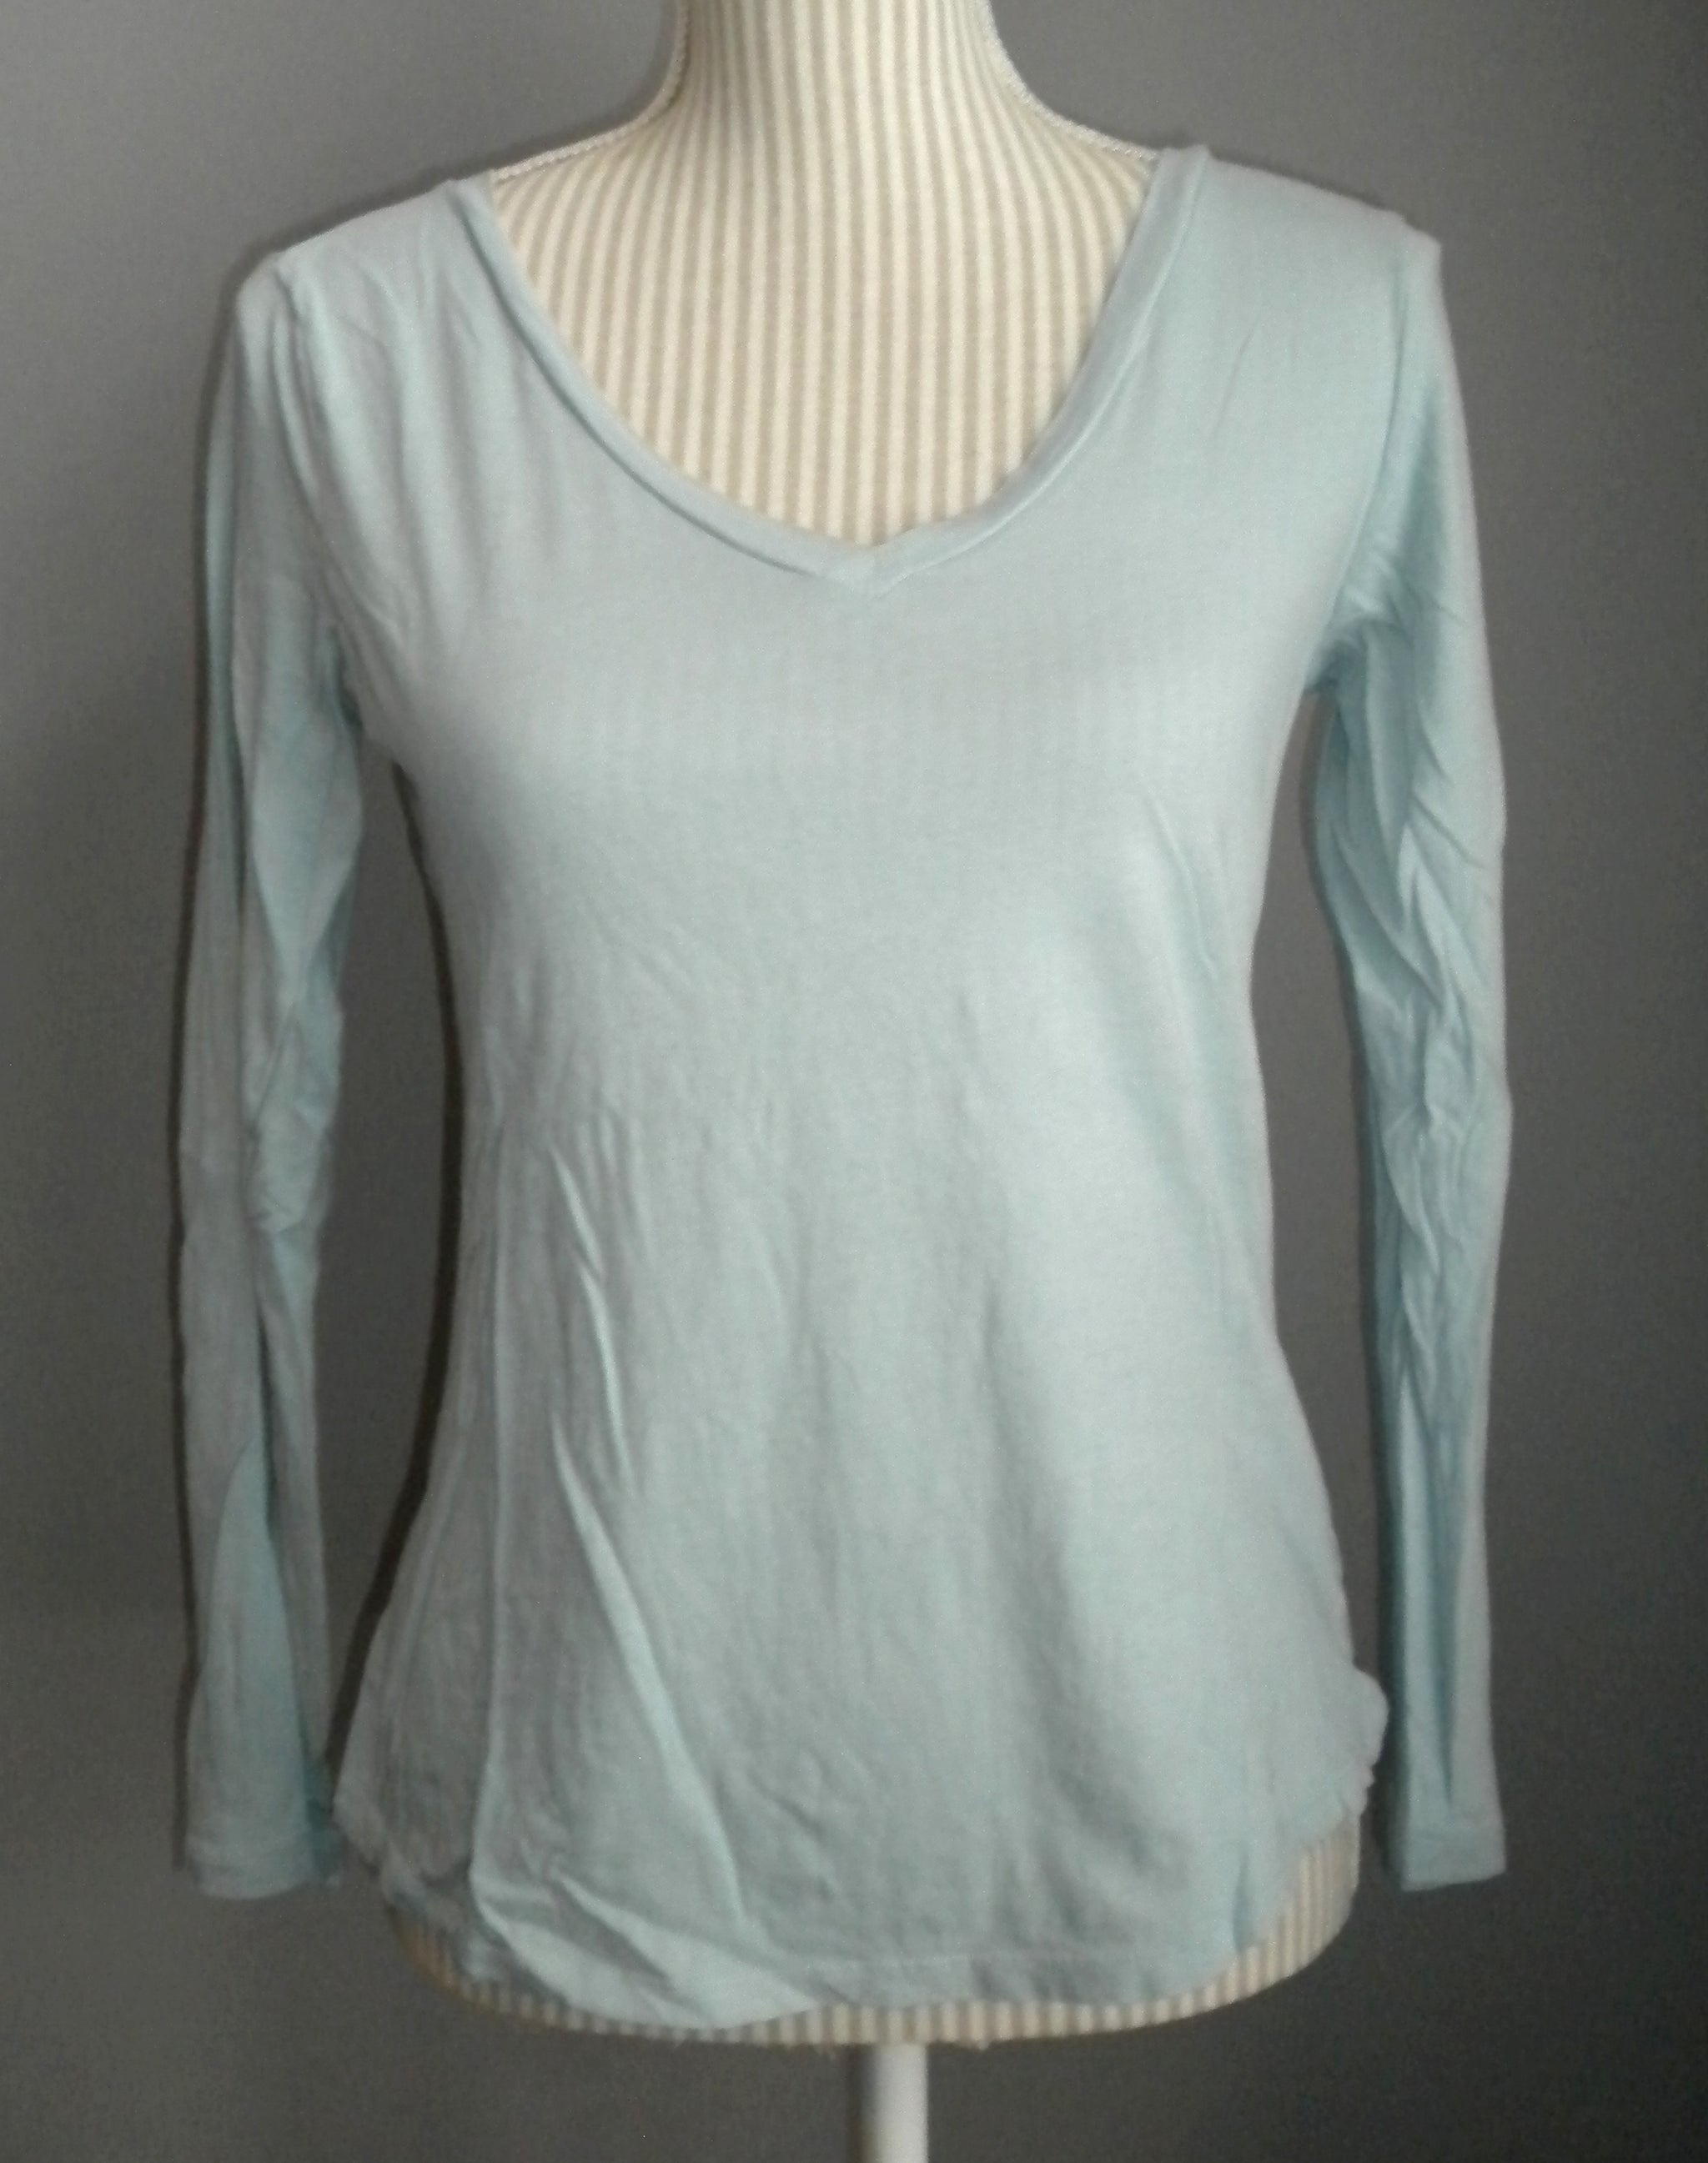 6a1173309c107d OLD NAVY RELAXED FIT TOP LS LADIES XS VGUC/EUC